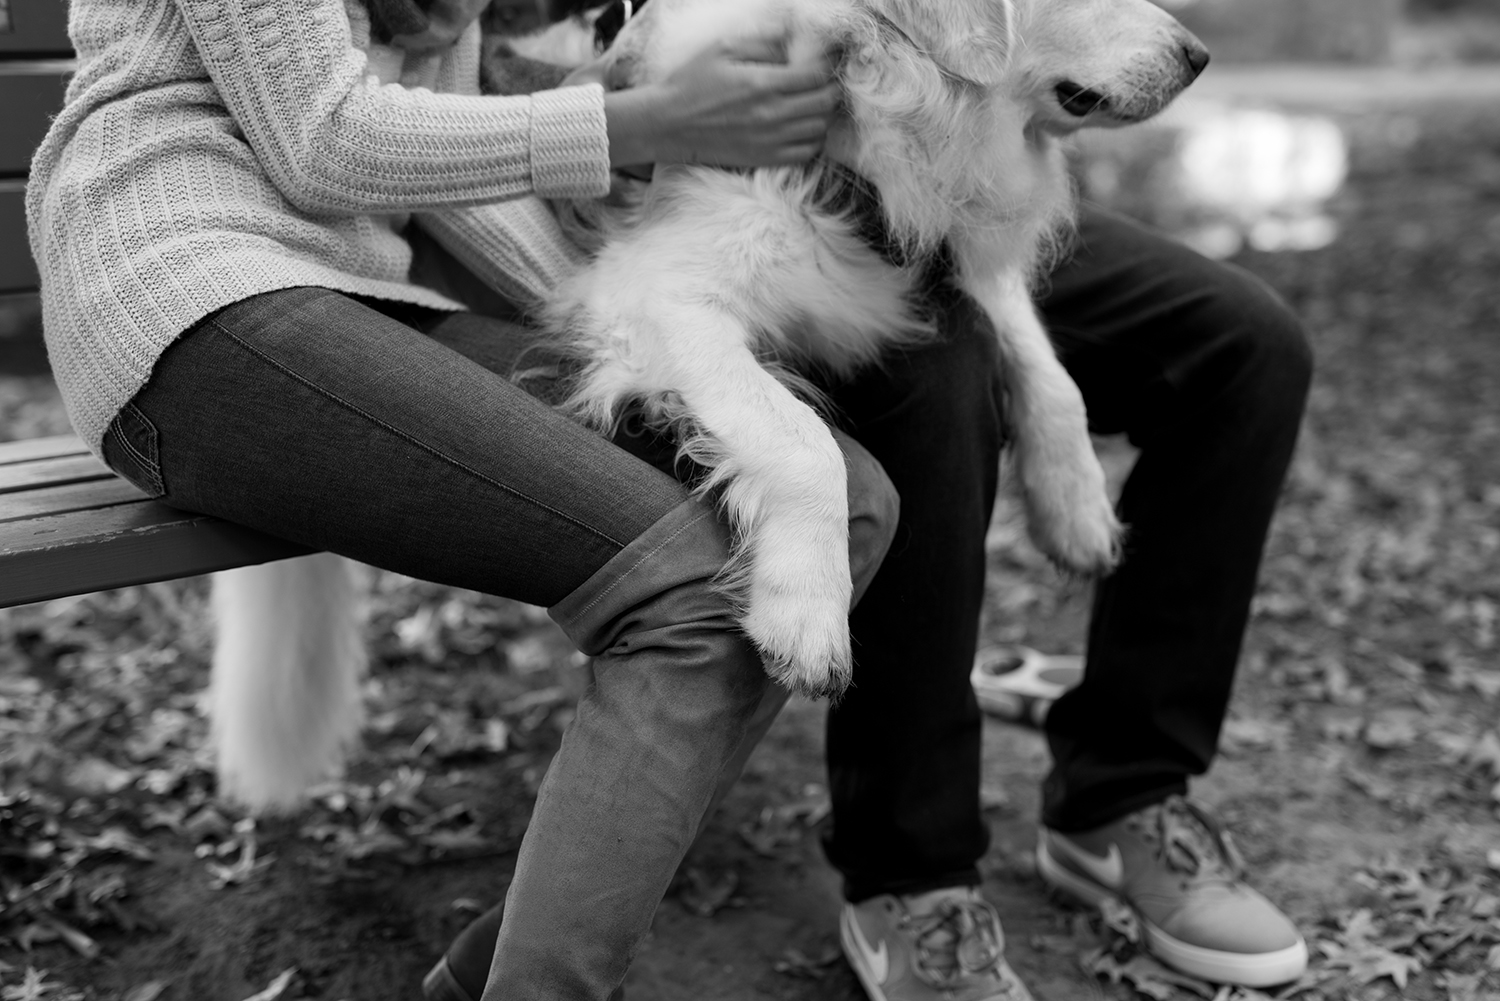 Melissa+Jeff- Local Park Engagement Session with Dog- Booth Park Nutley- New Jersey-Olivia Christina Photo-97.jpg